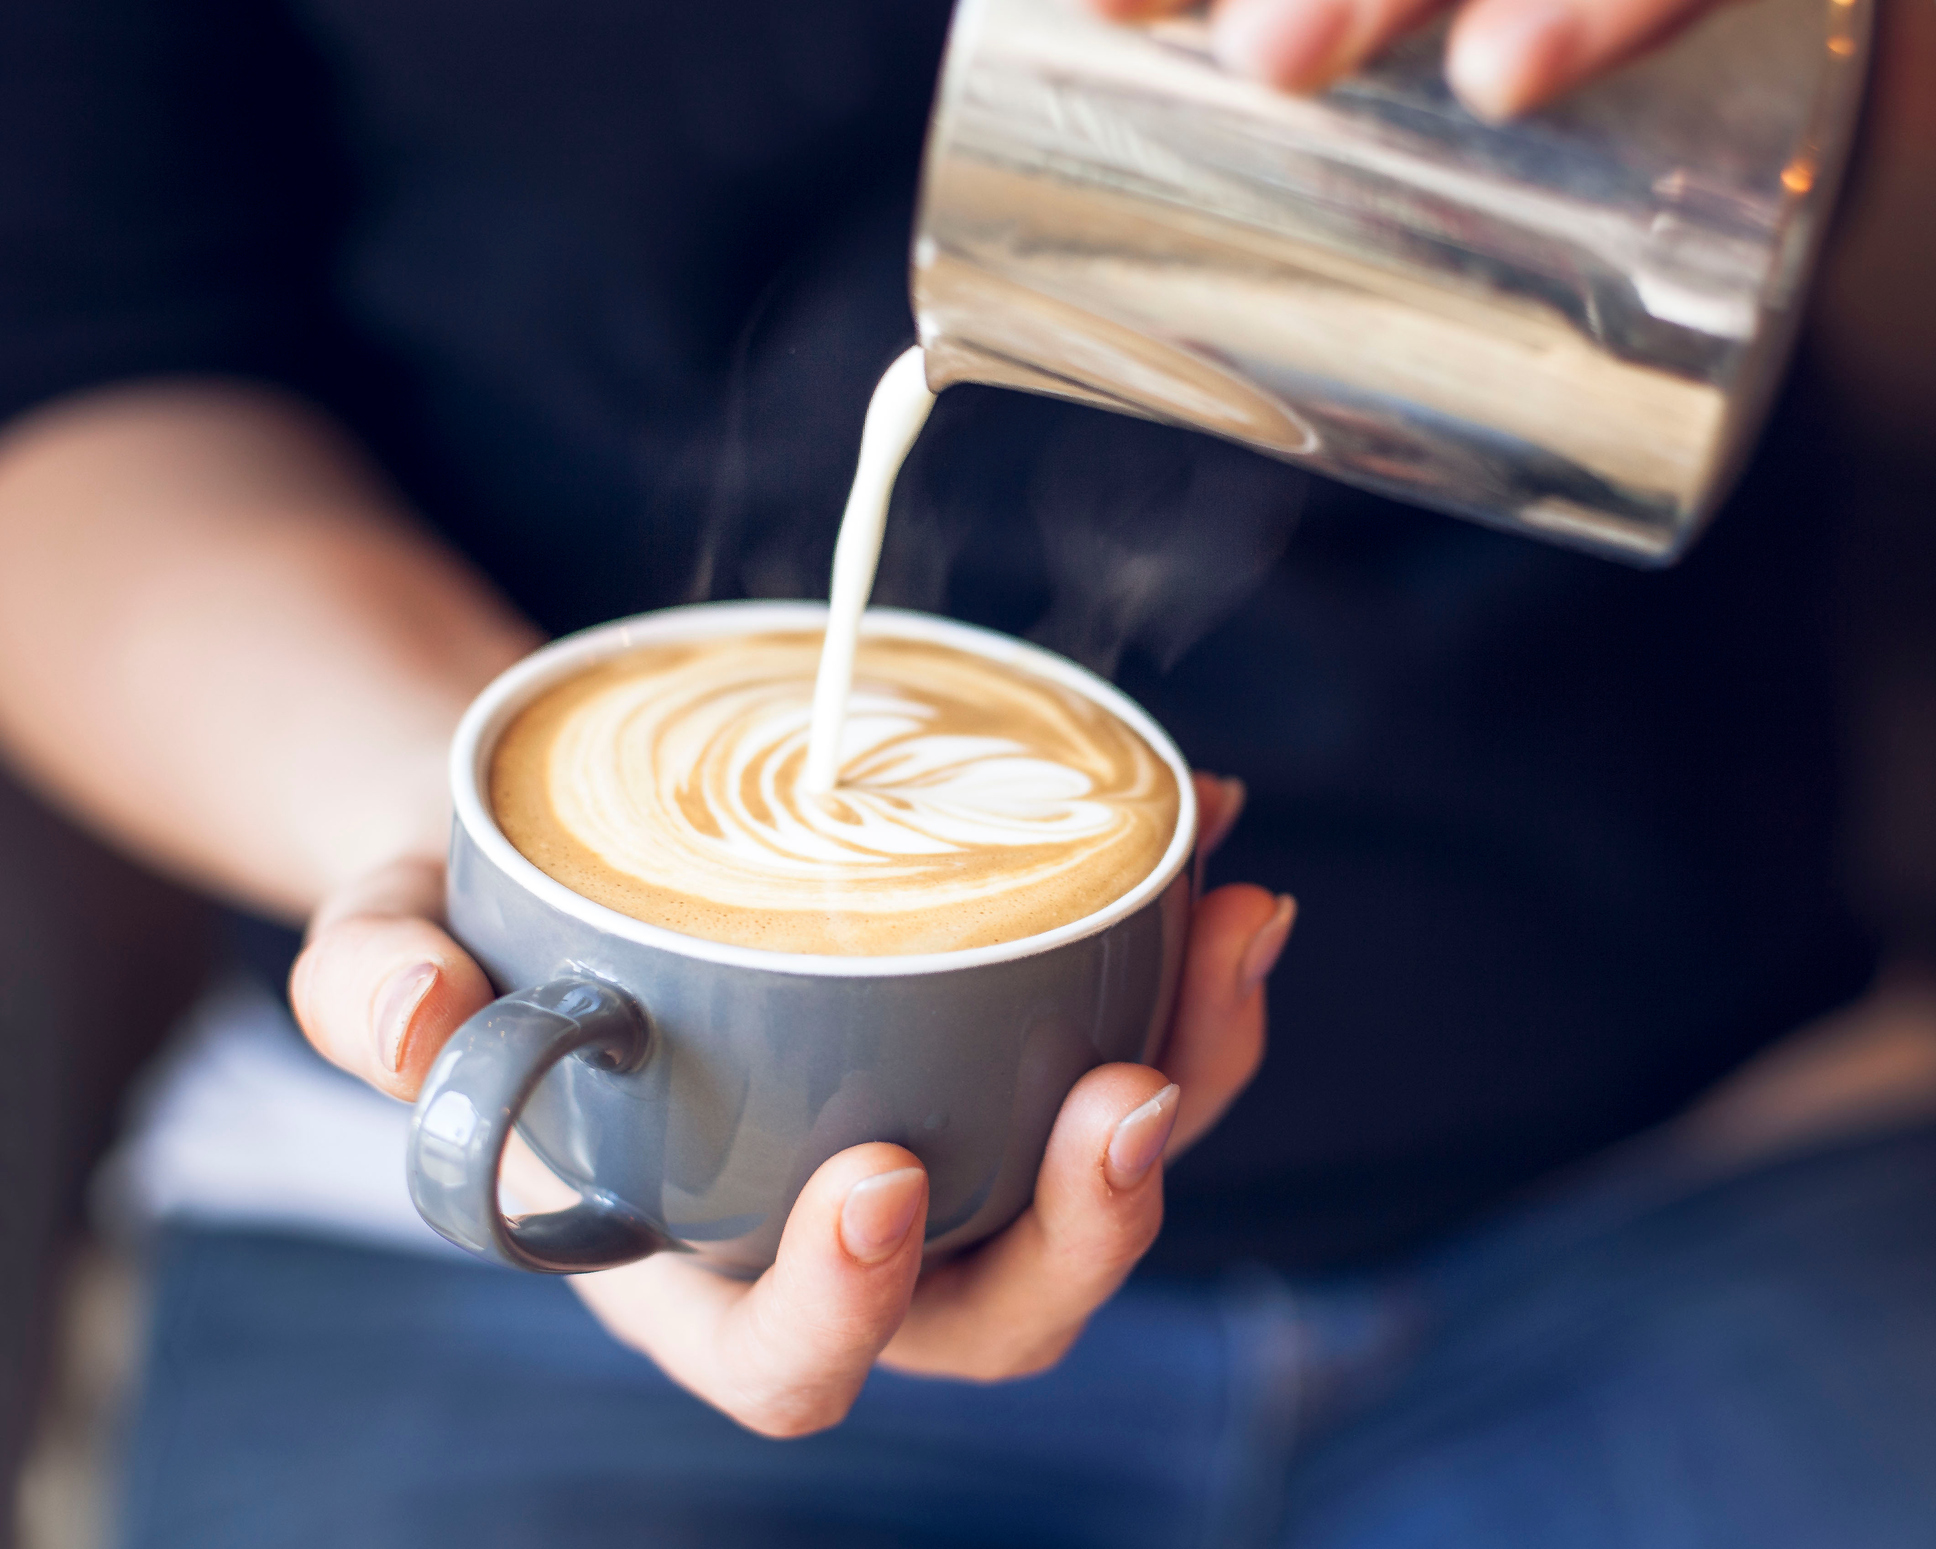 Drinking coffee could reduce your chances of Alzheimer's and Parkinson's, study claims